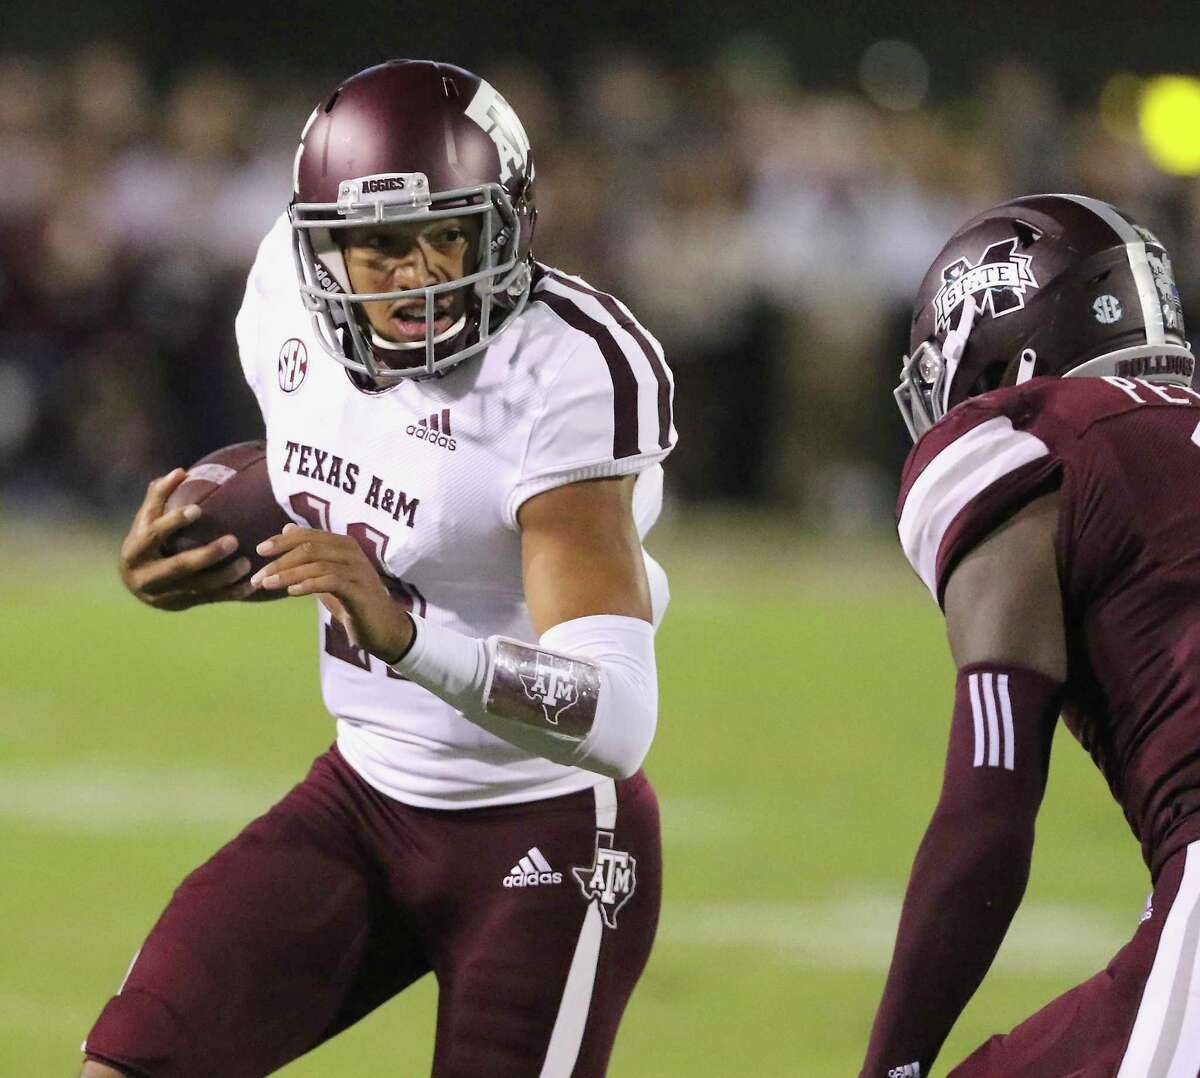 Texas A&M quarterback Kellen Mond opens his junior year as the team's unquestioned leader after beating out Nick Starkel to be the starter last year. He's also on a mission to improve upon his 57.3 percent completion rate from 2018.